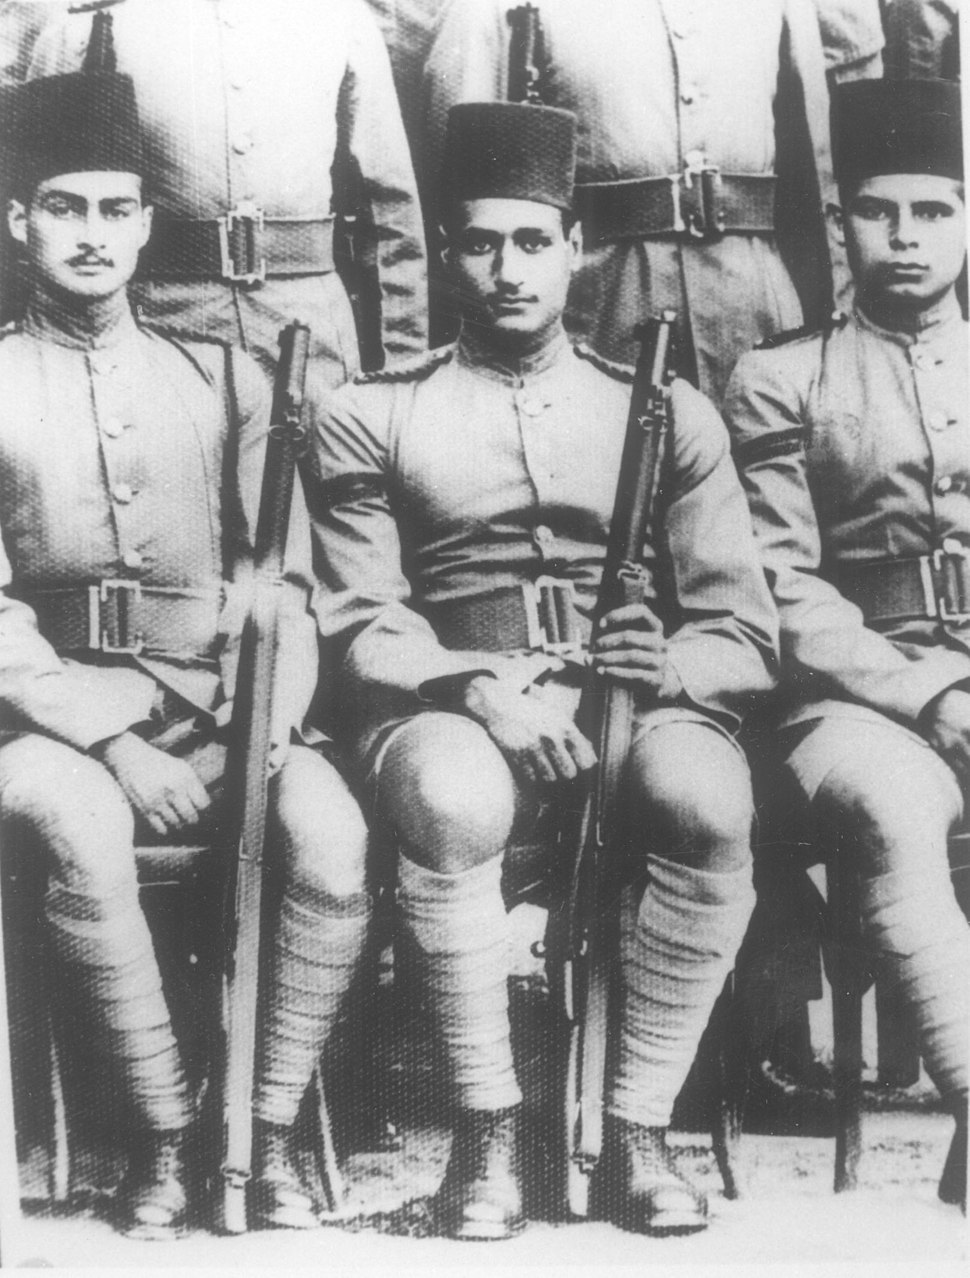 Nasser with comrades, 1940